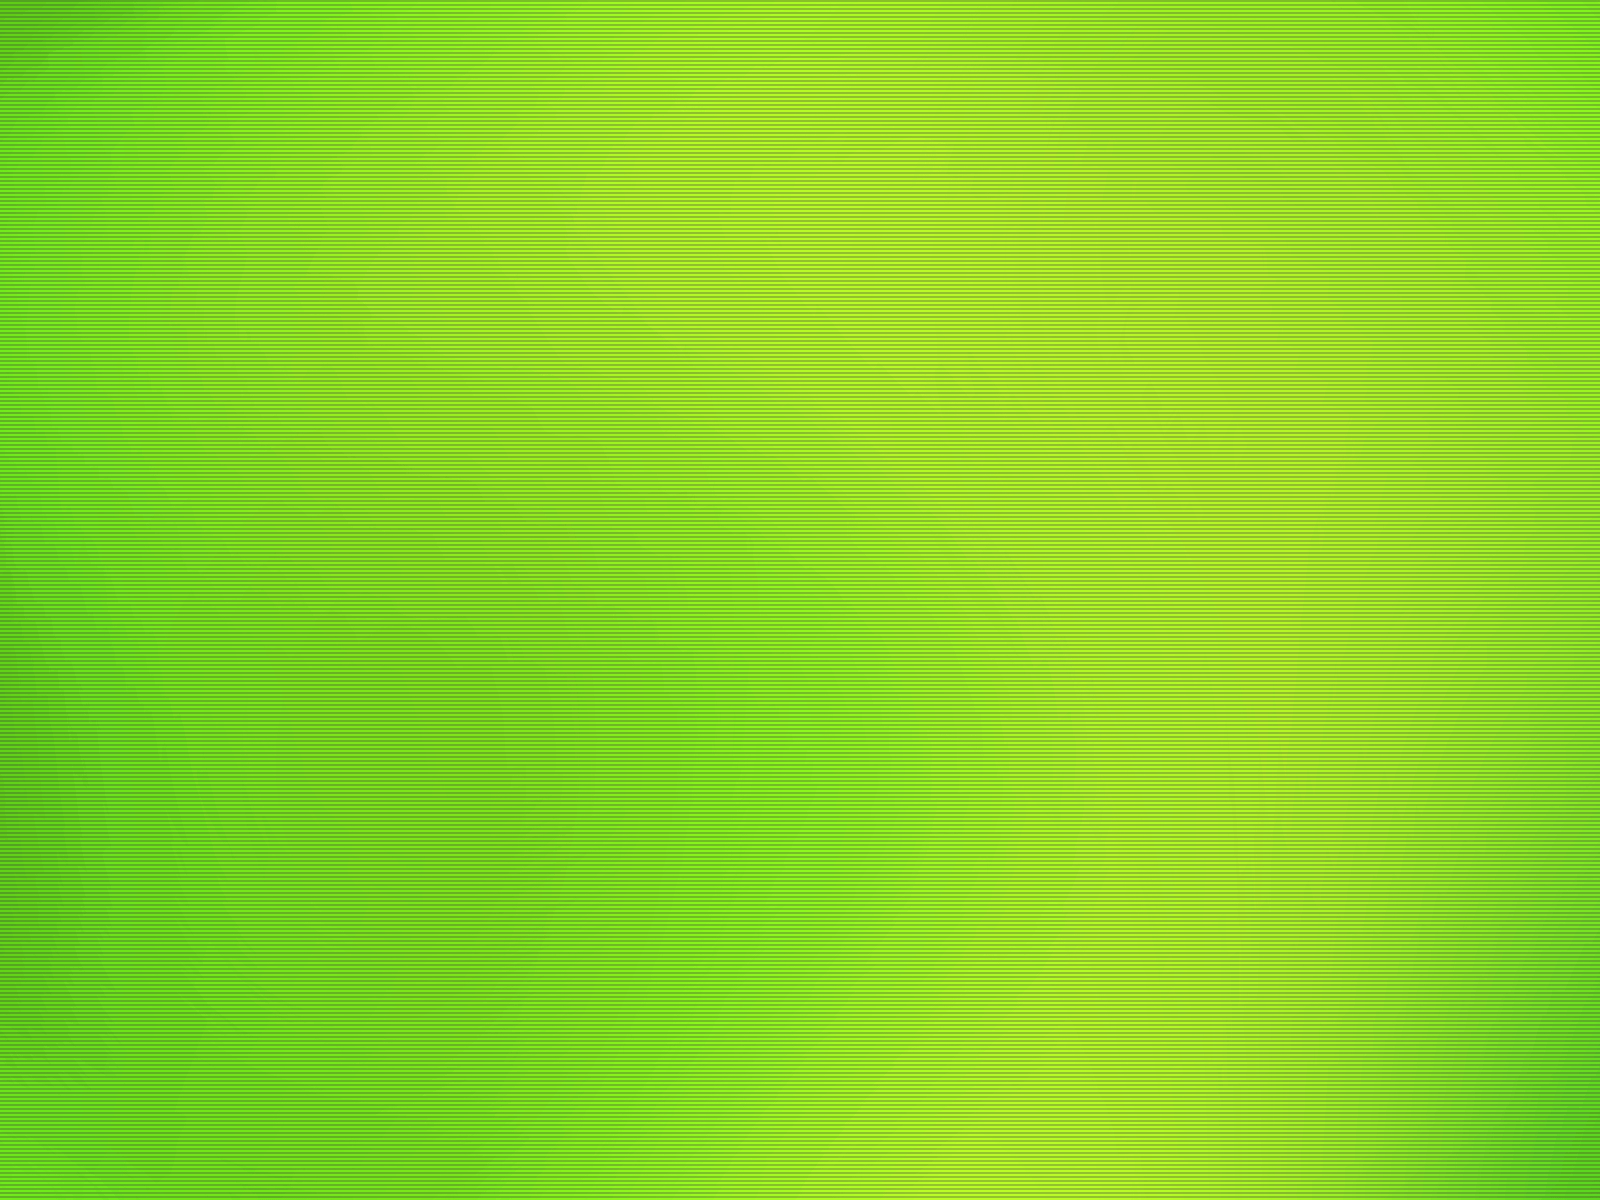 Green Background Png (108+ images in Collection) Page 1.